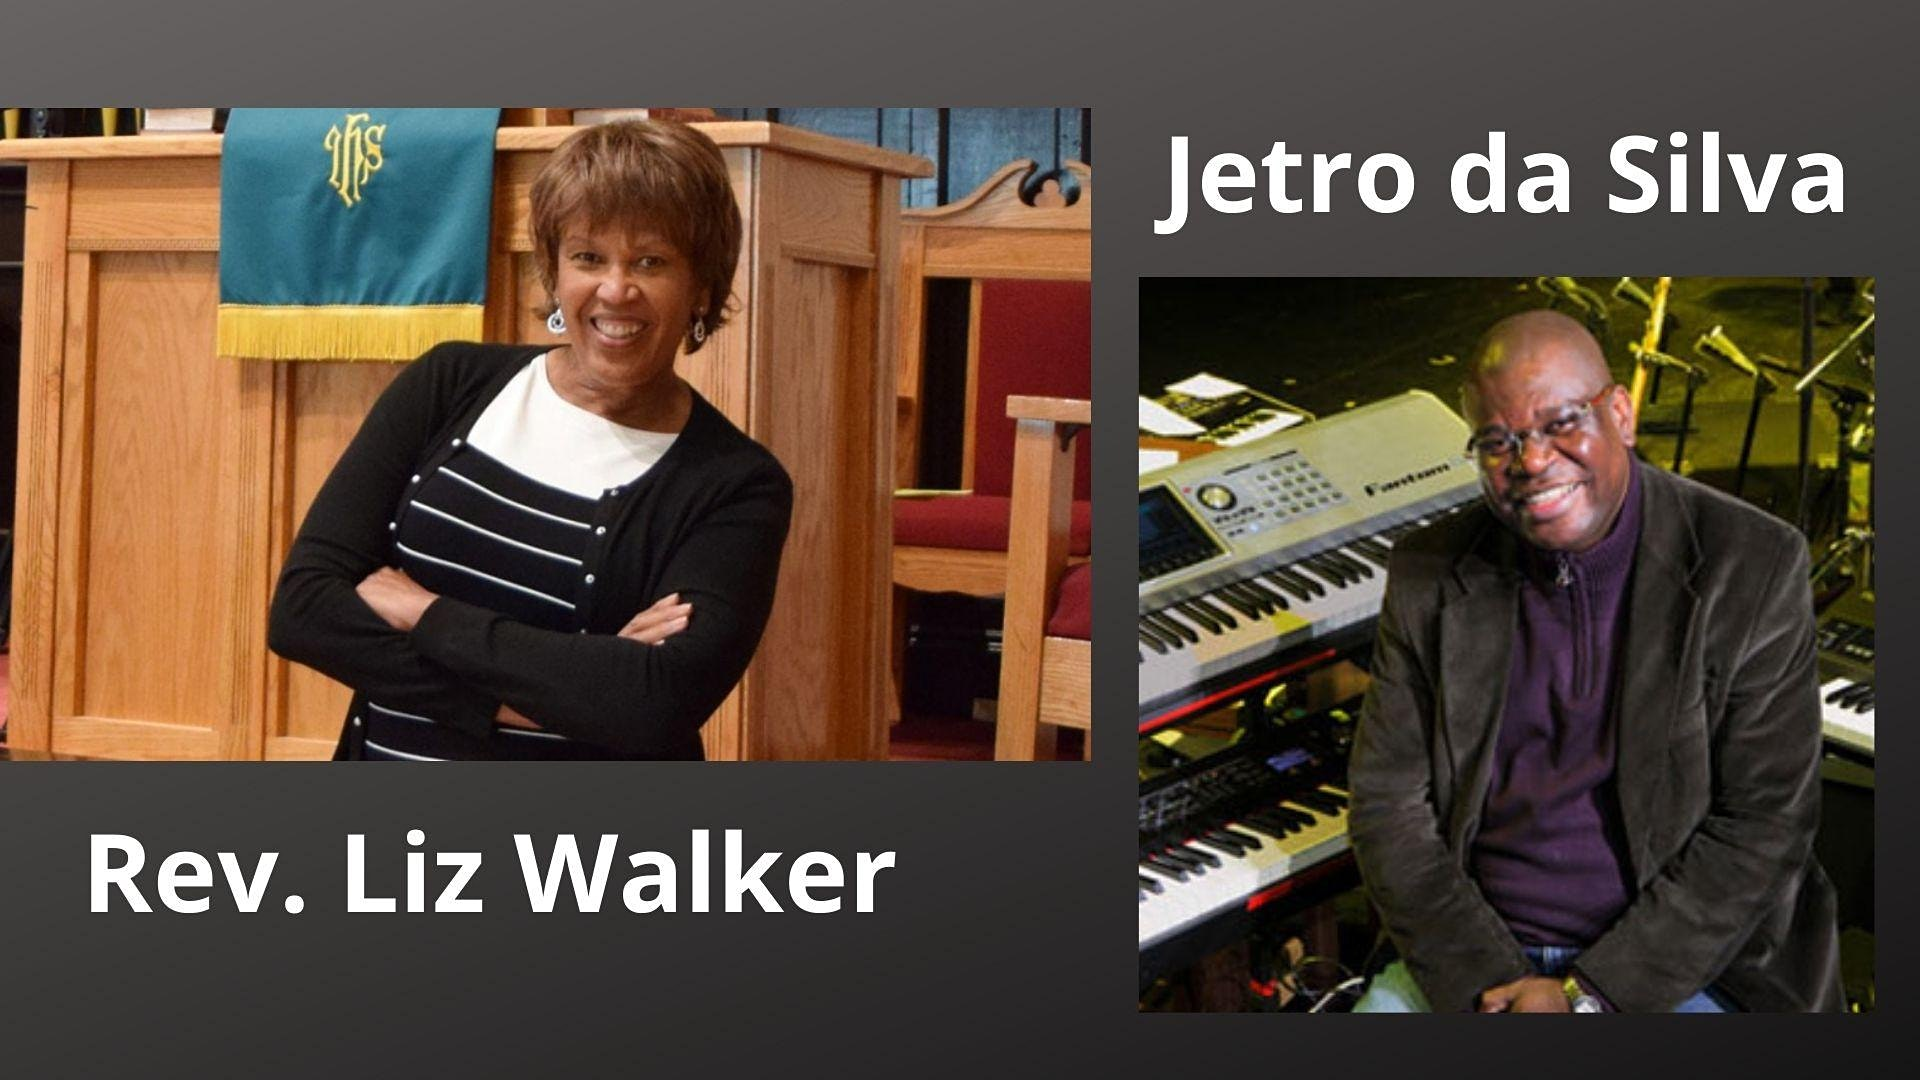 Join us online with jazz legend Jetro da Silva , along with Rev. Liz Walker. This is a FUNDRAISER for the Social Impact Center (link below)